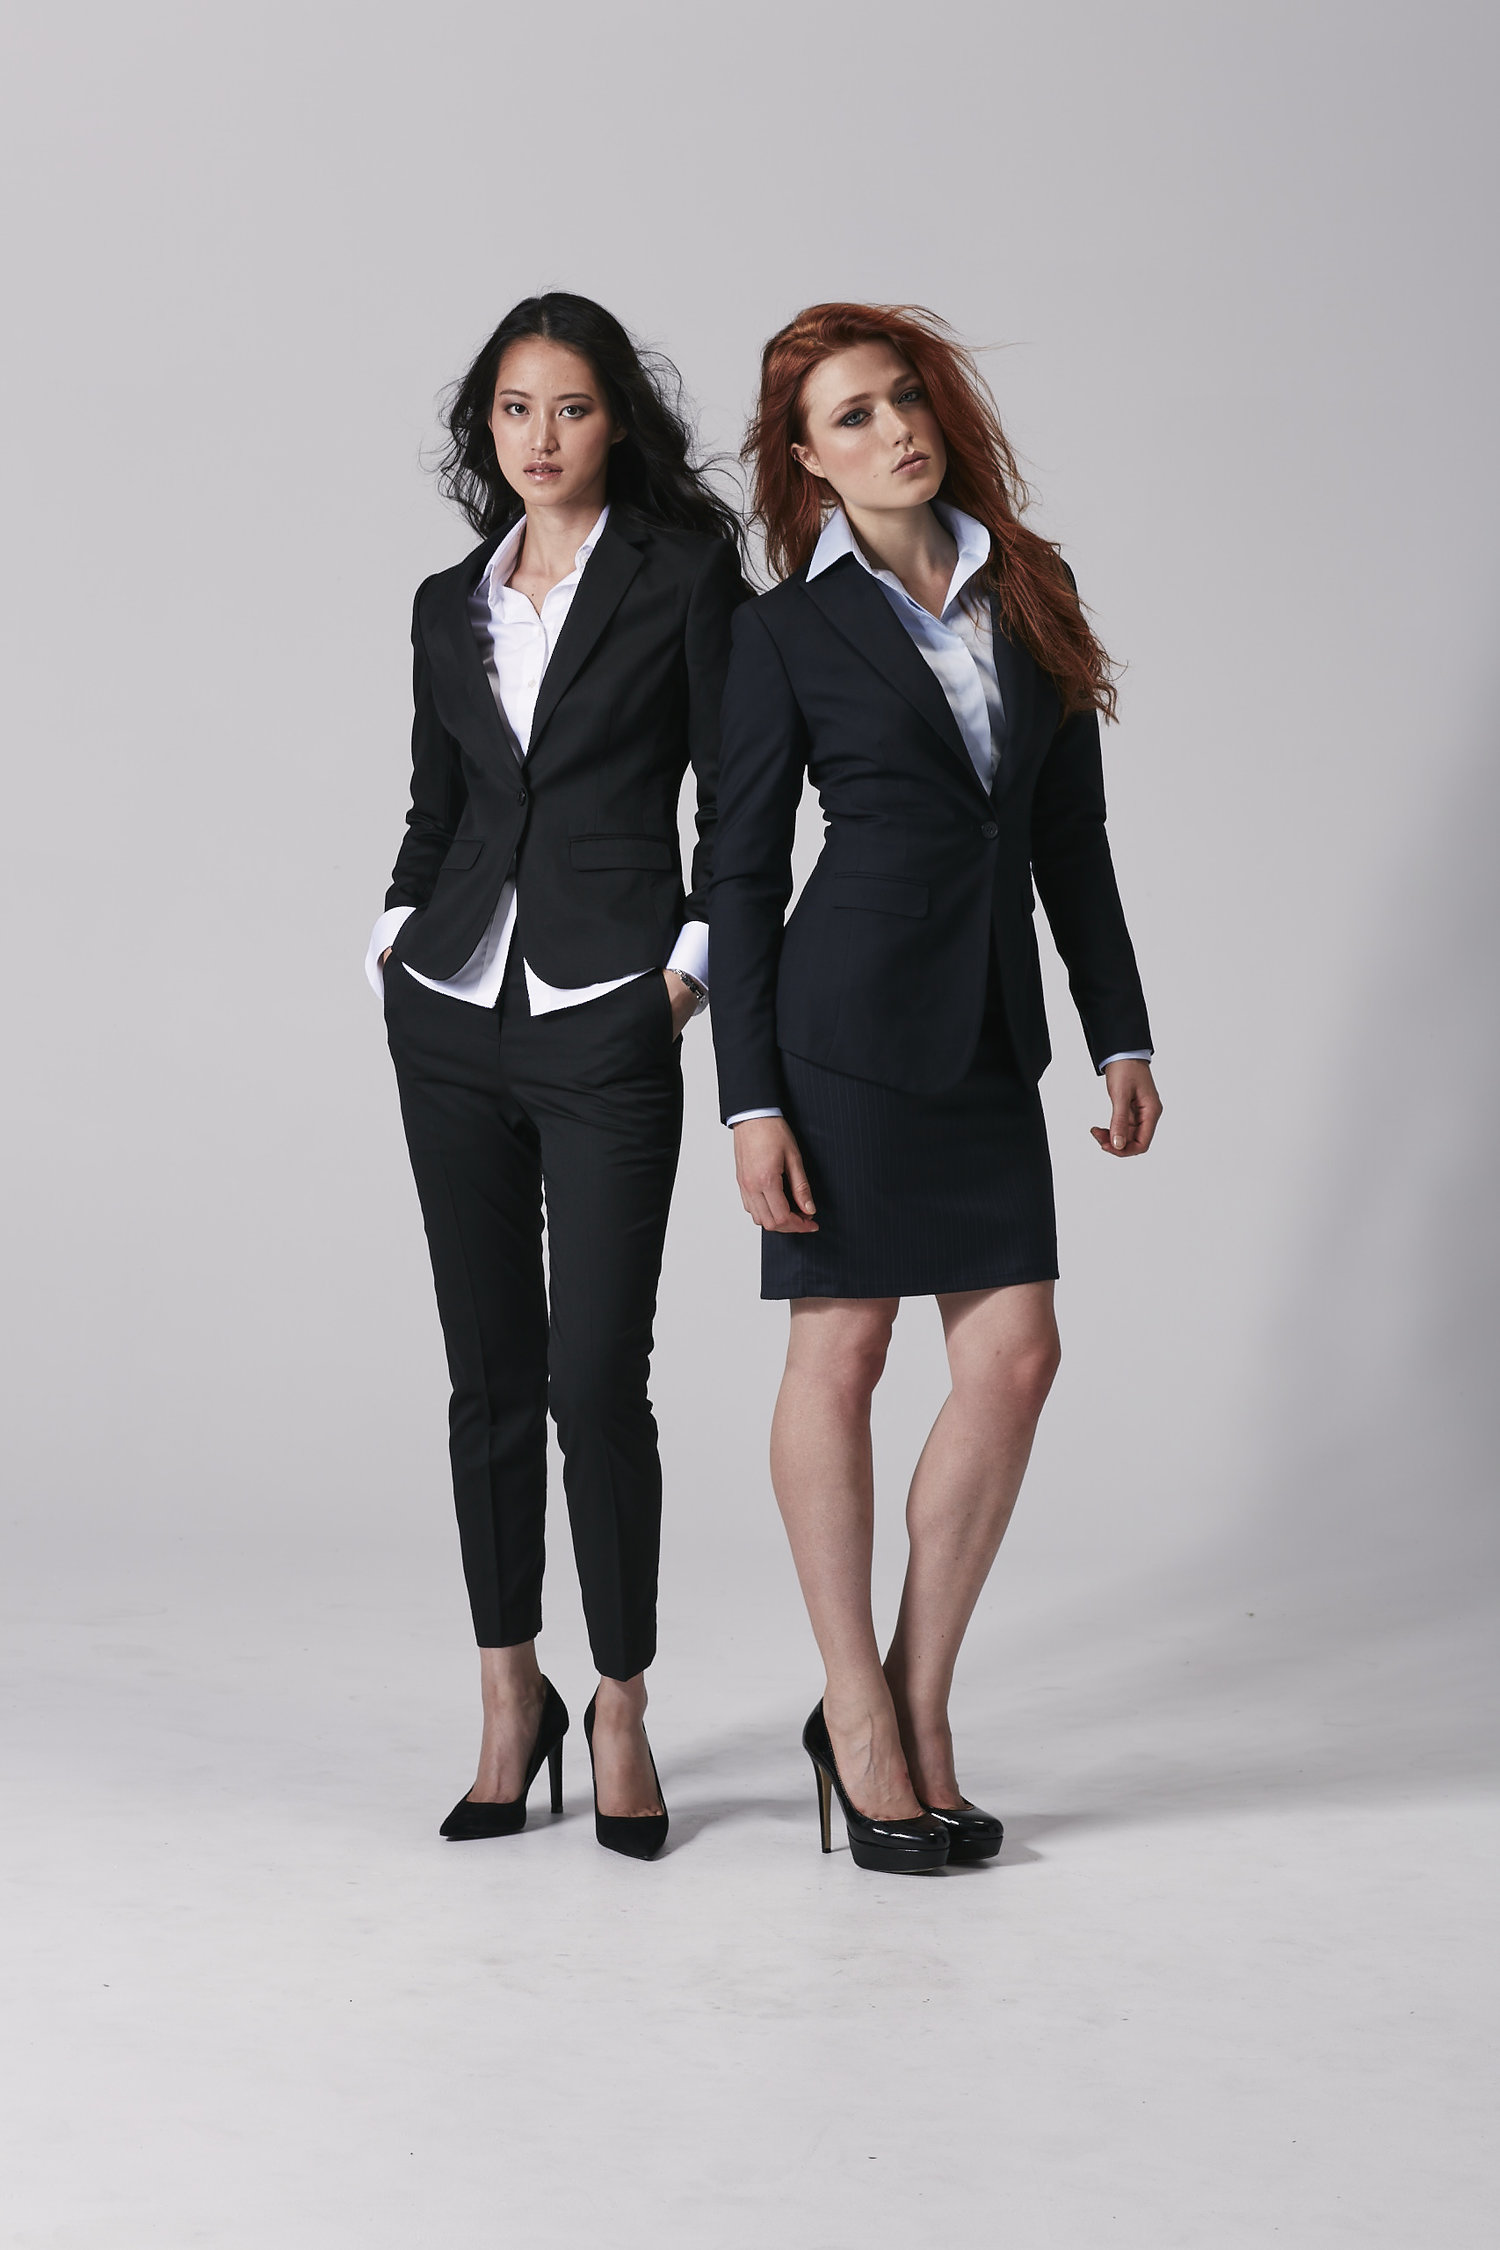 9174a4dcf5a HOW TO WEAR A SUIT LIKE A BOSSIsadora Nim -Women s Suit